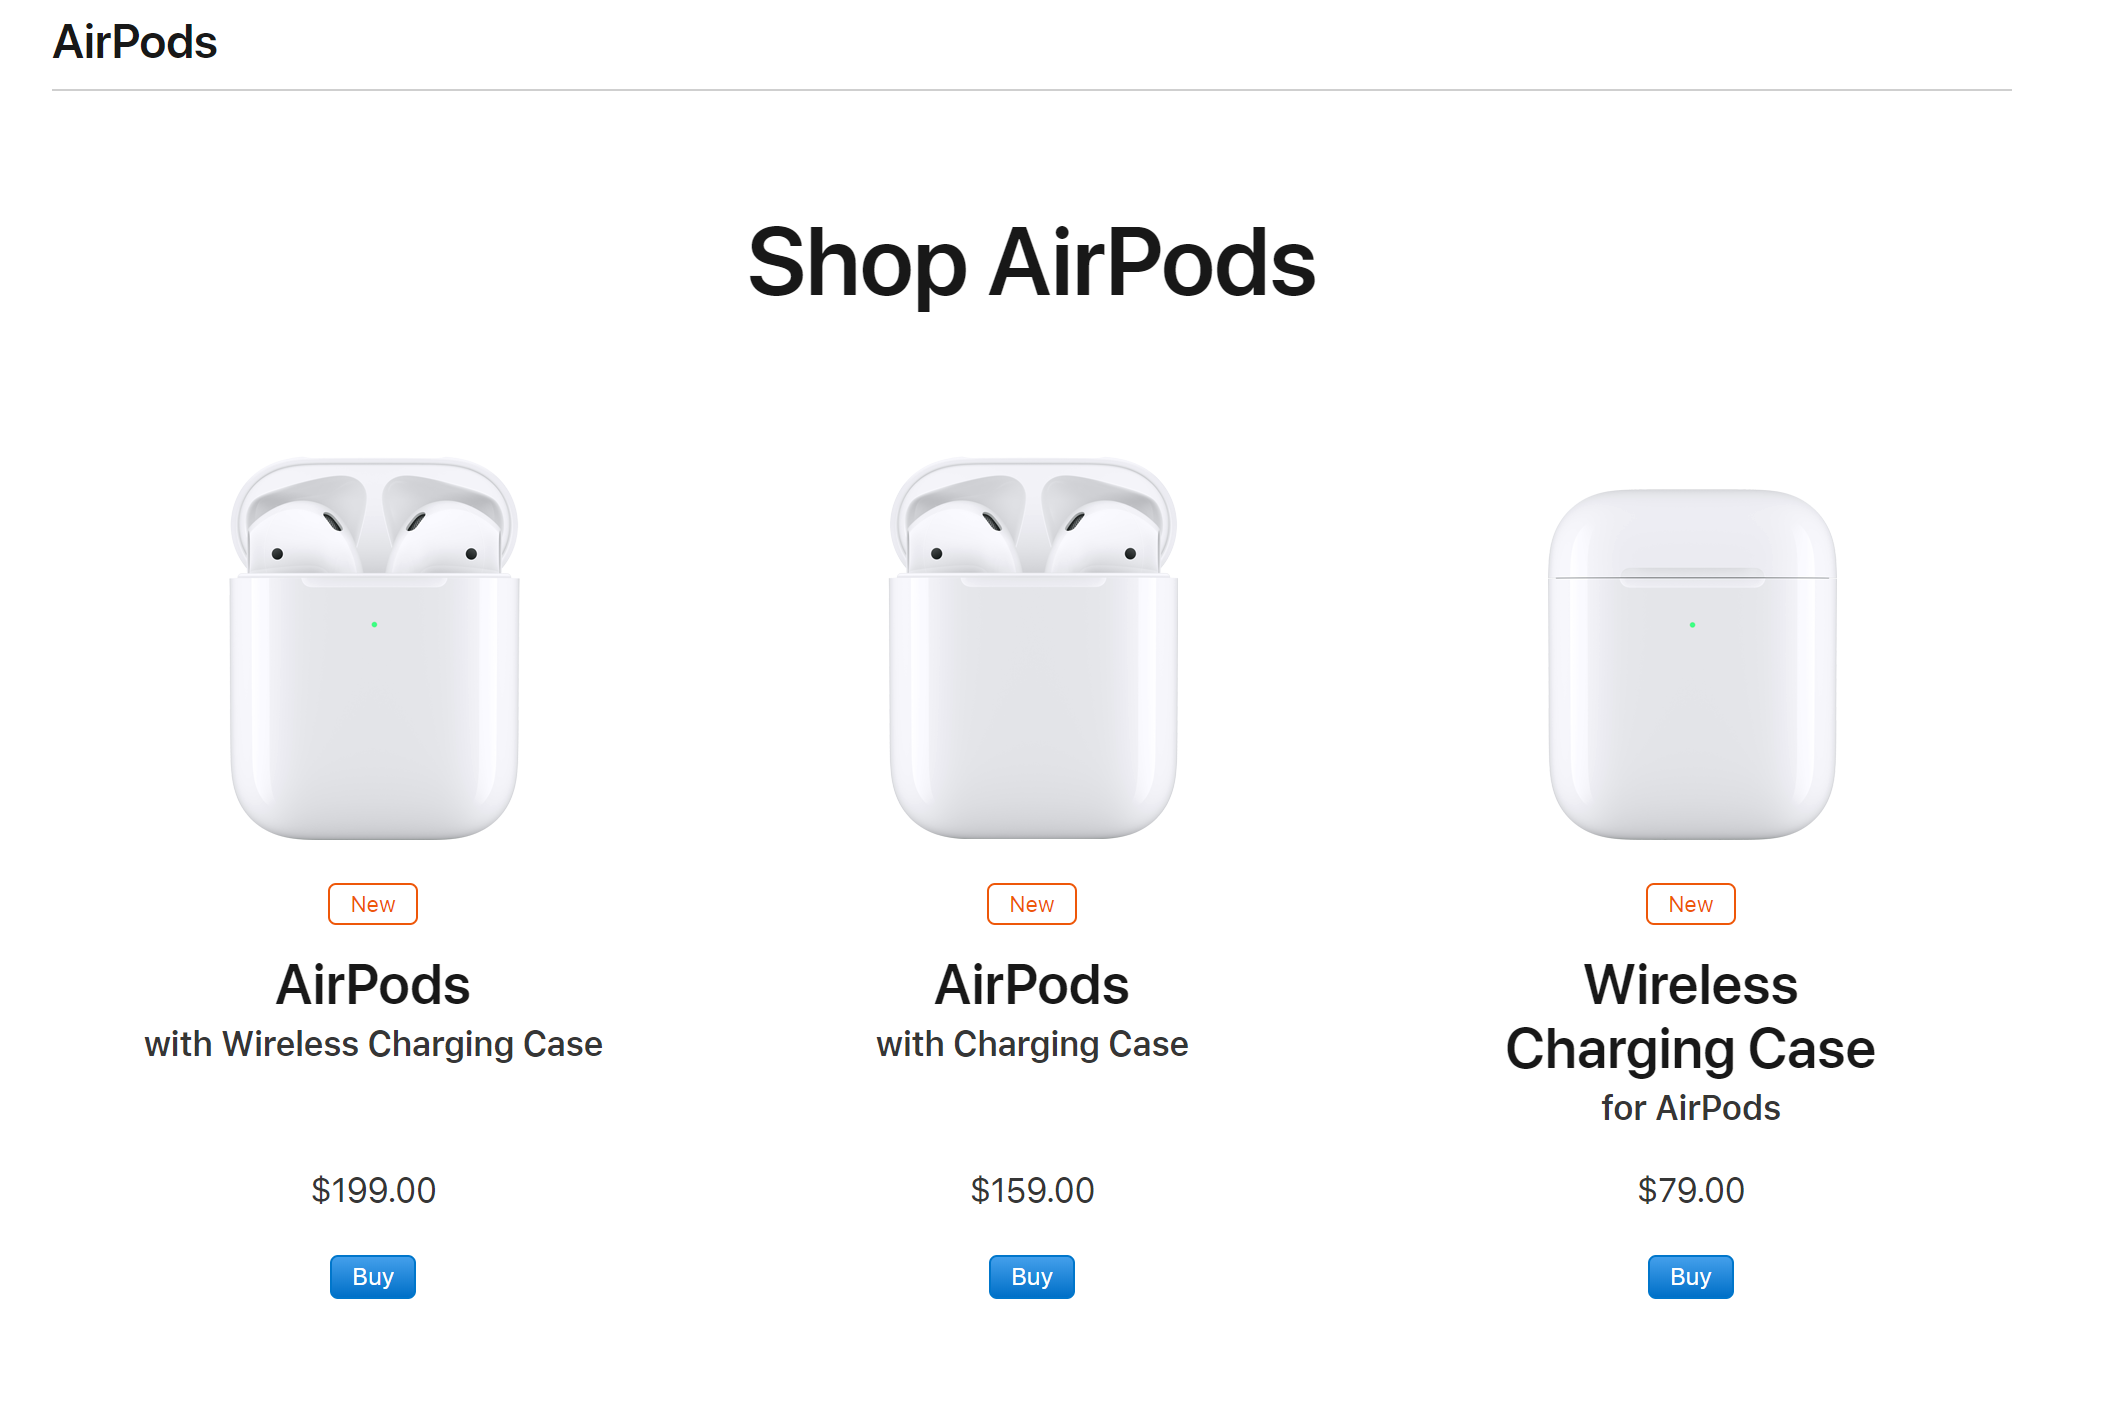 Apple announces second generation AirPods earbuds